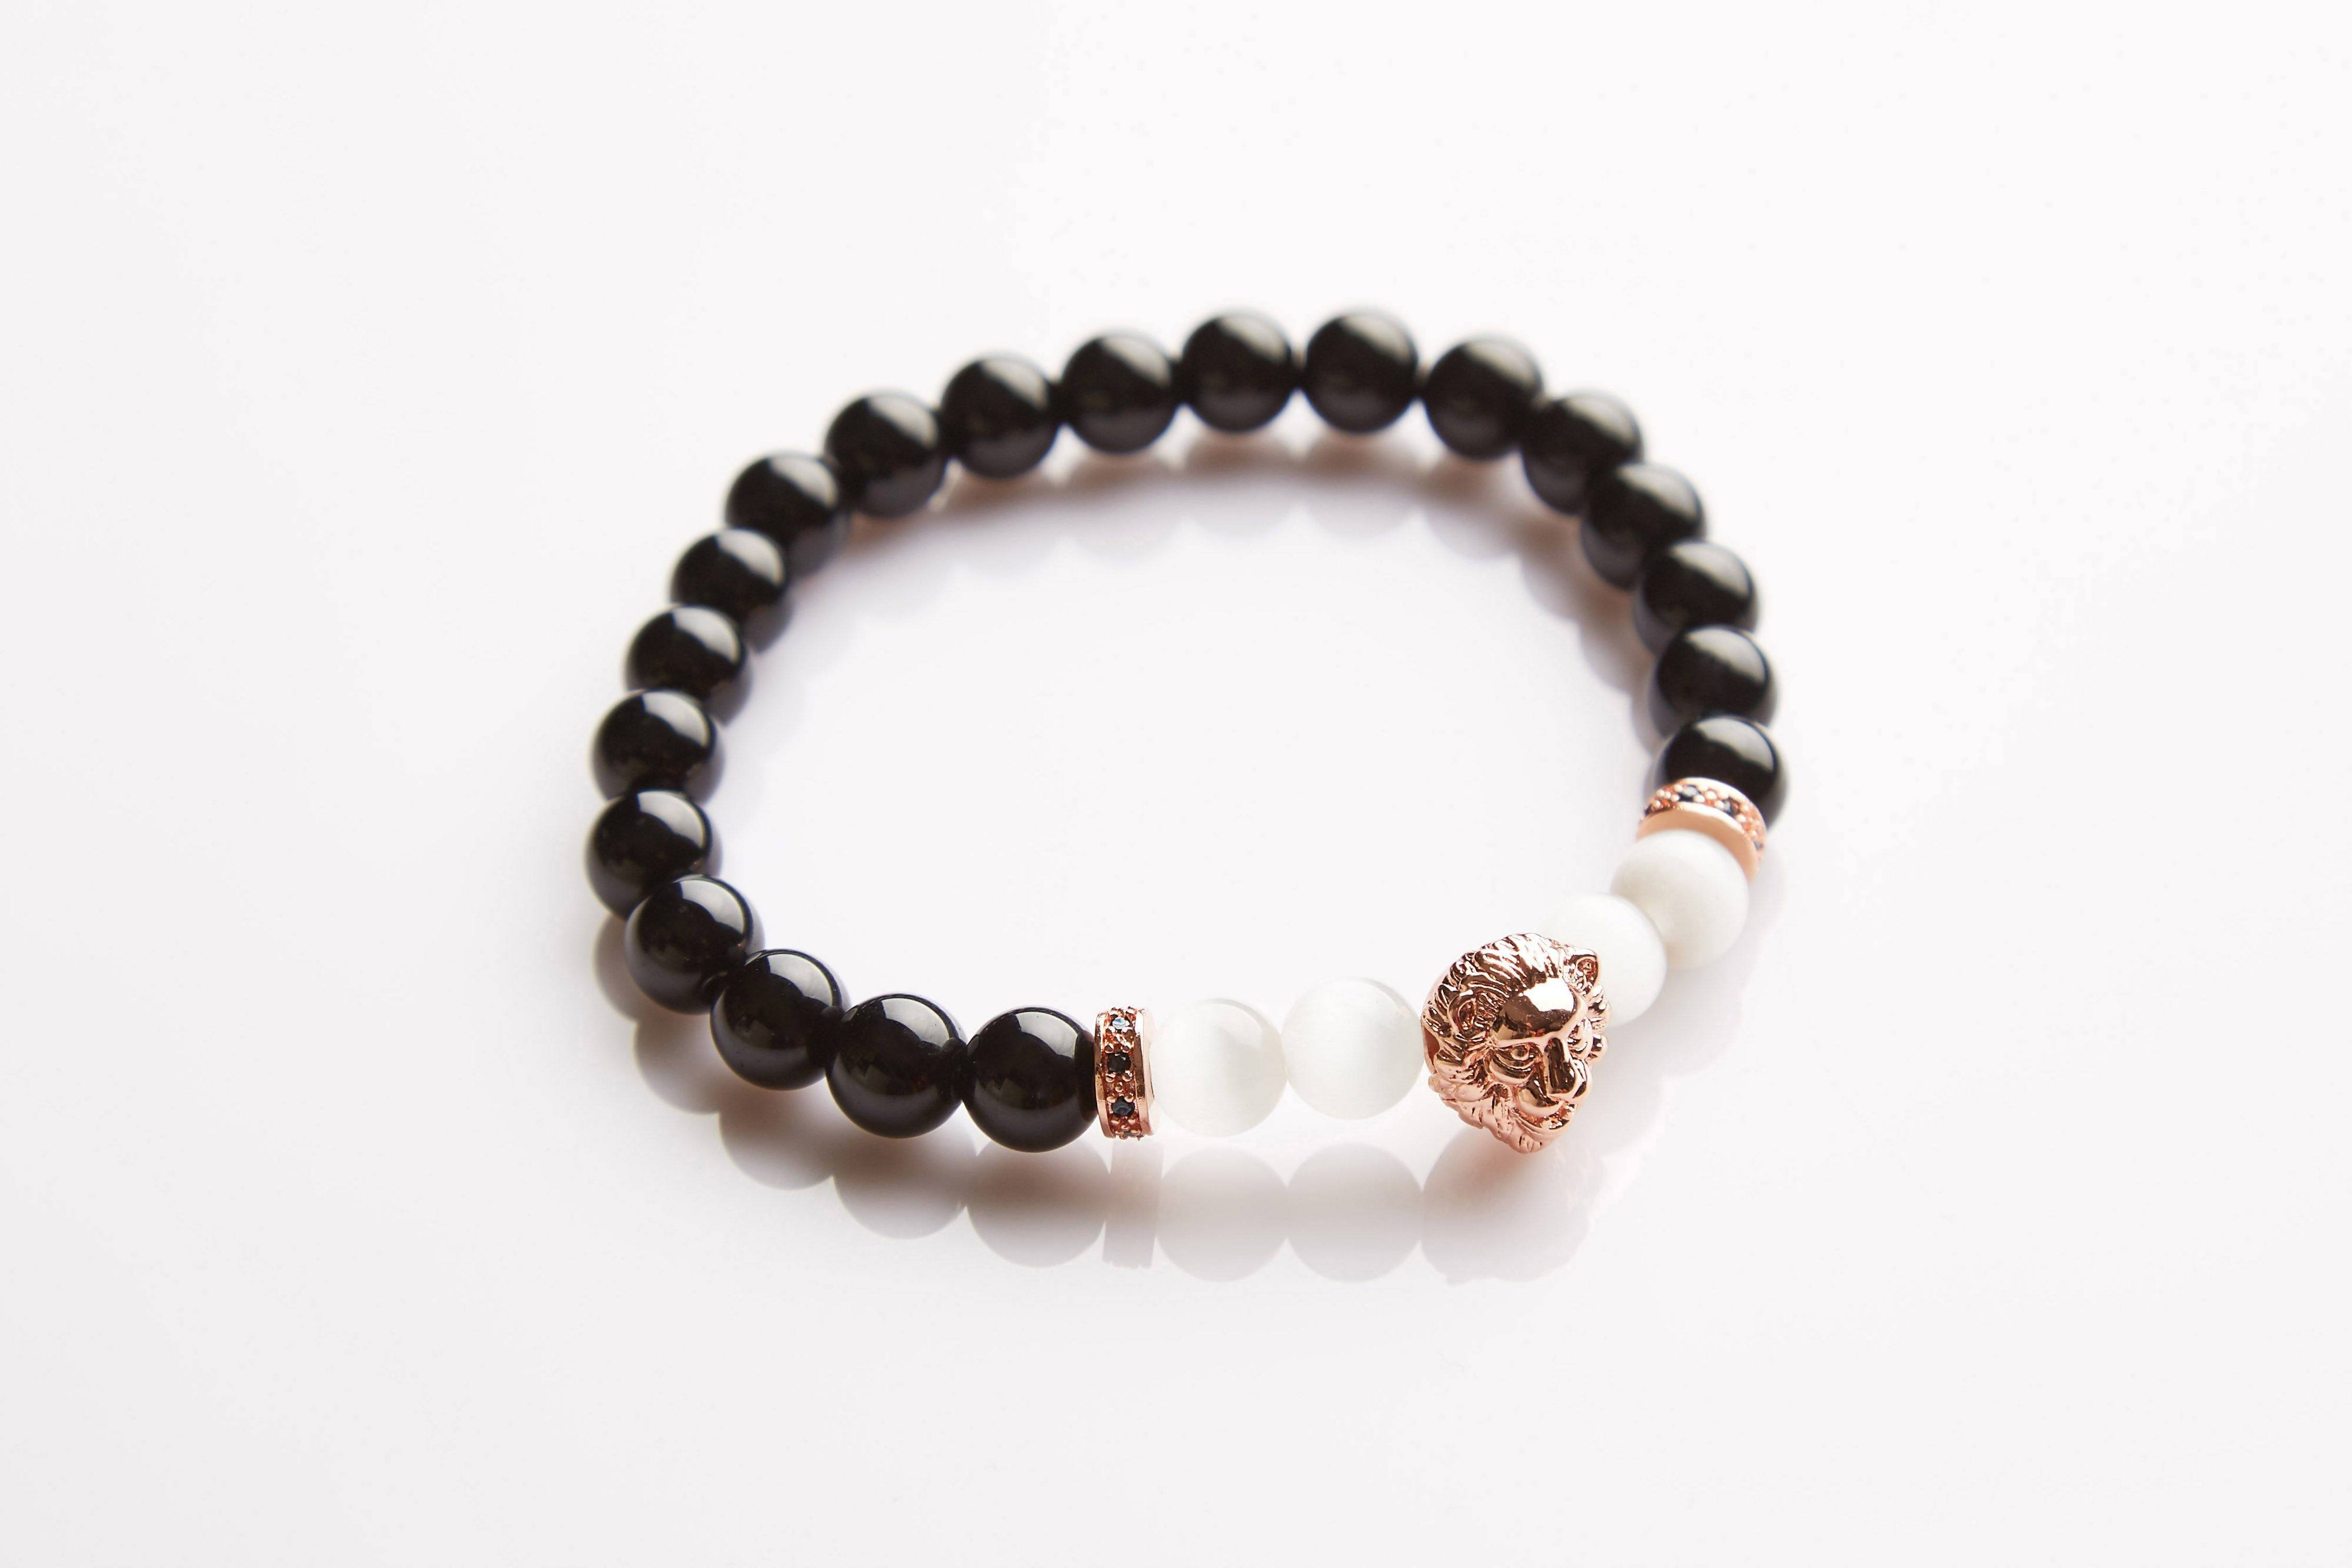 J. By Jee Rose Gold Lion Head Beads Bracelet - Men's Bracelets - J By Jee - Naiise